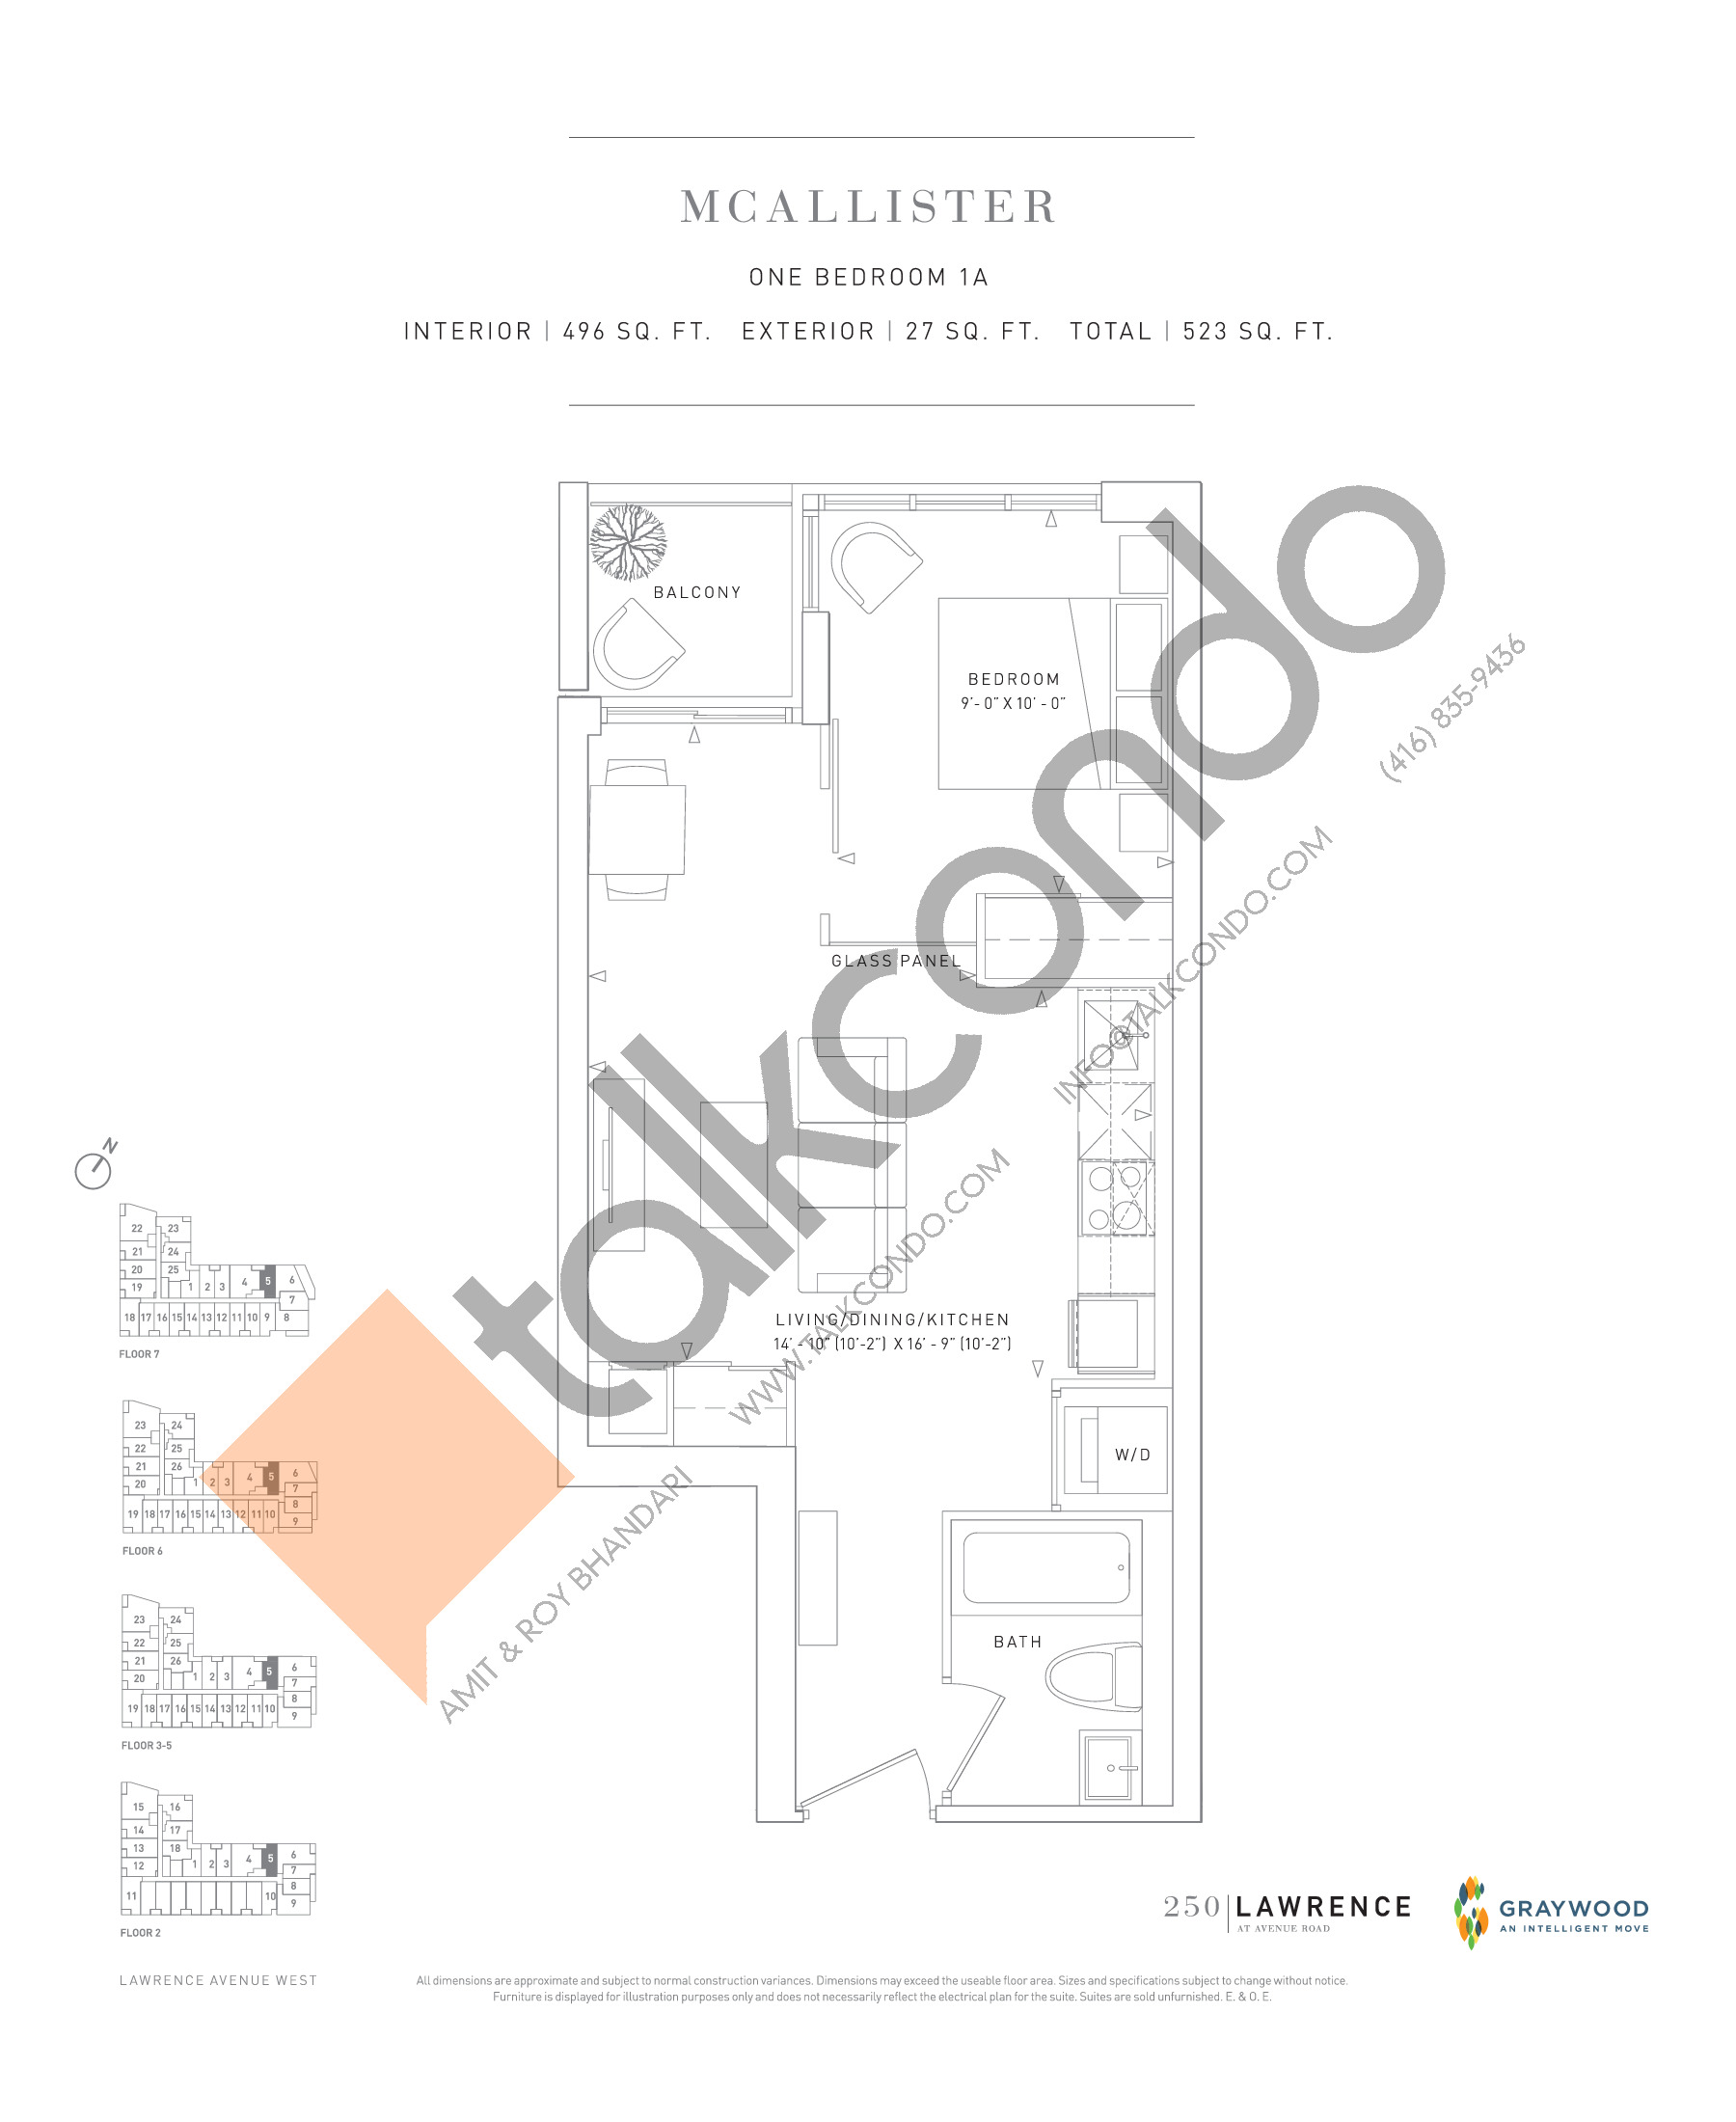 McAllister Floor Plan at 250 Lawrence Avenue West Condos - 496 sq.ft